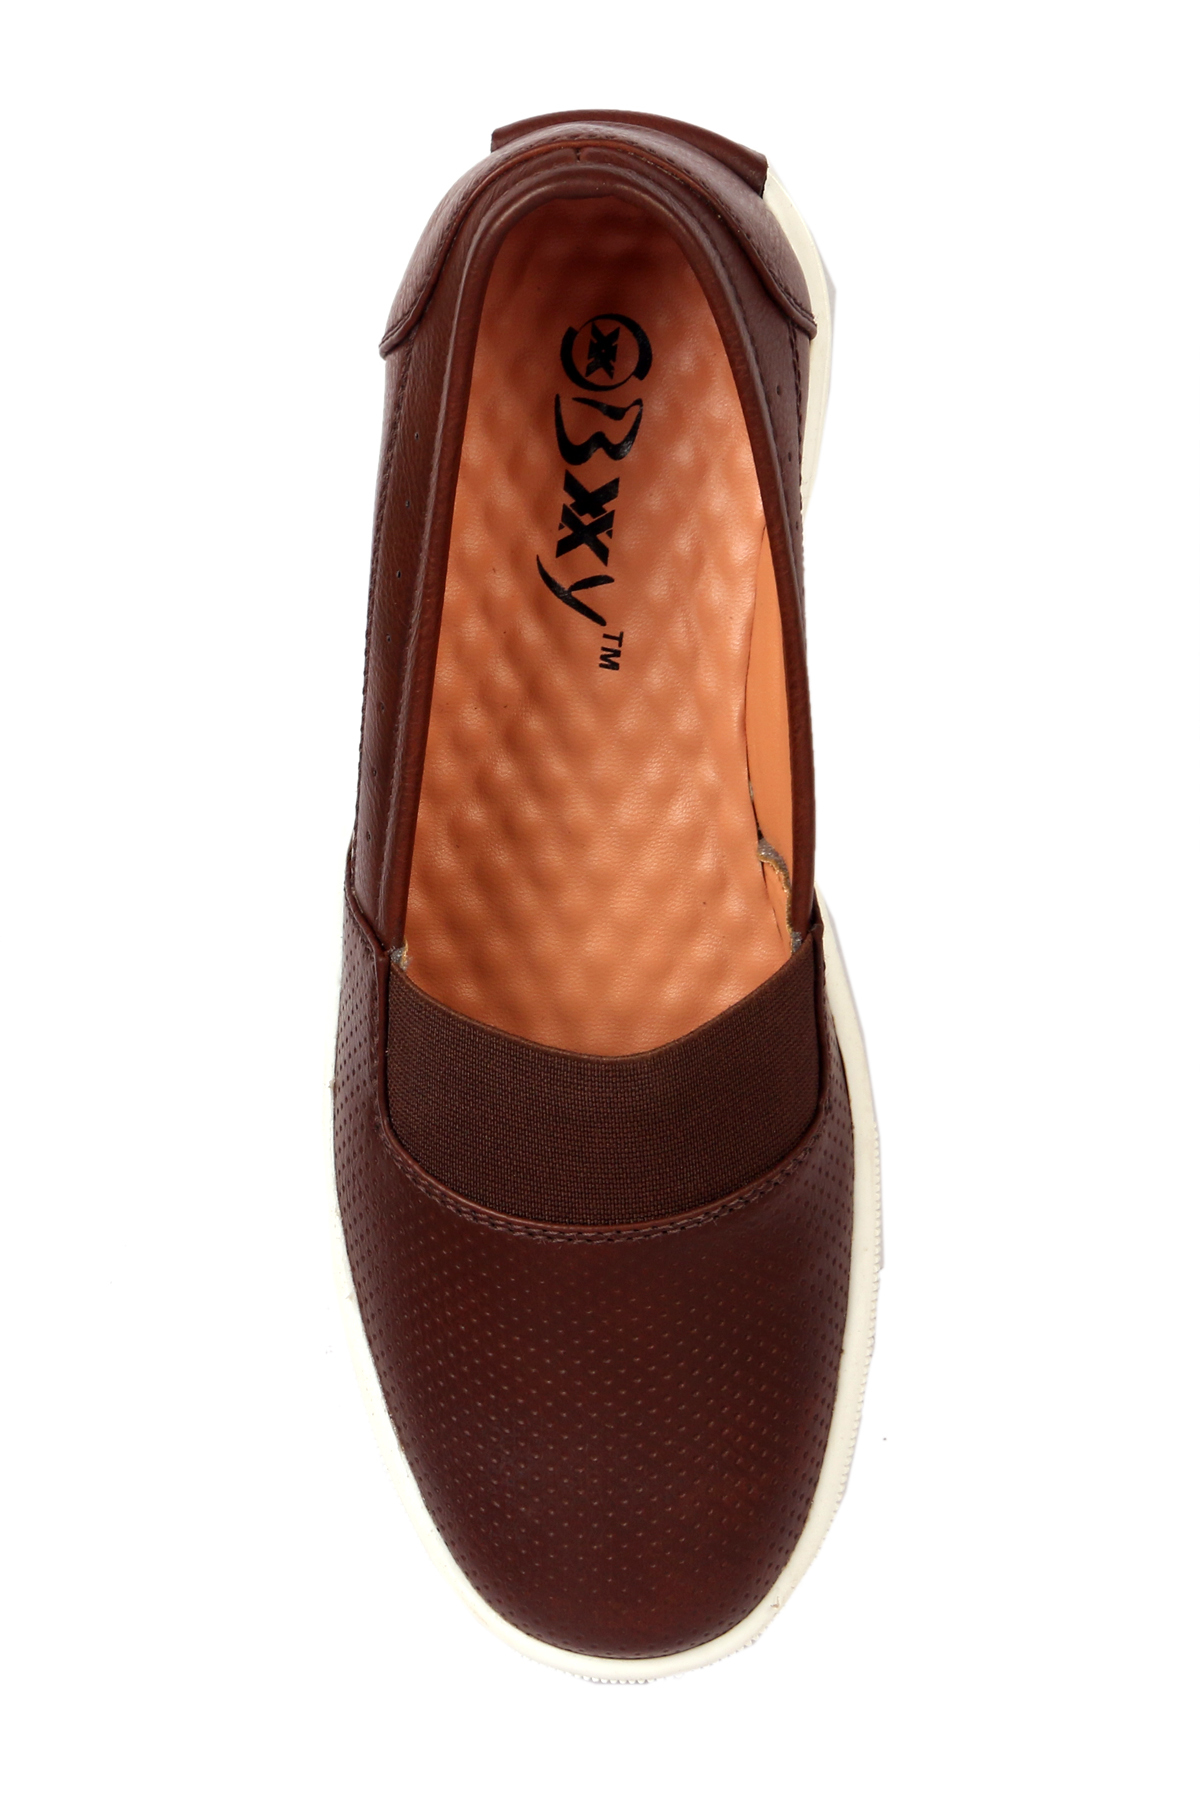 LADIES LOAFER CASUAL SHOES